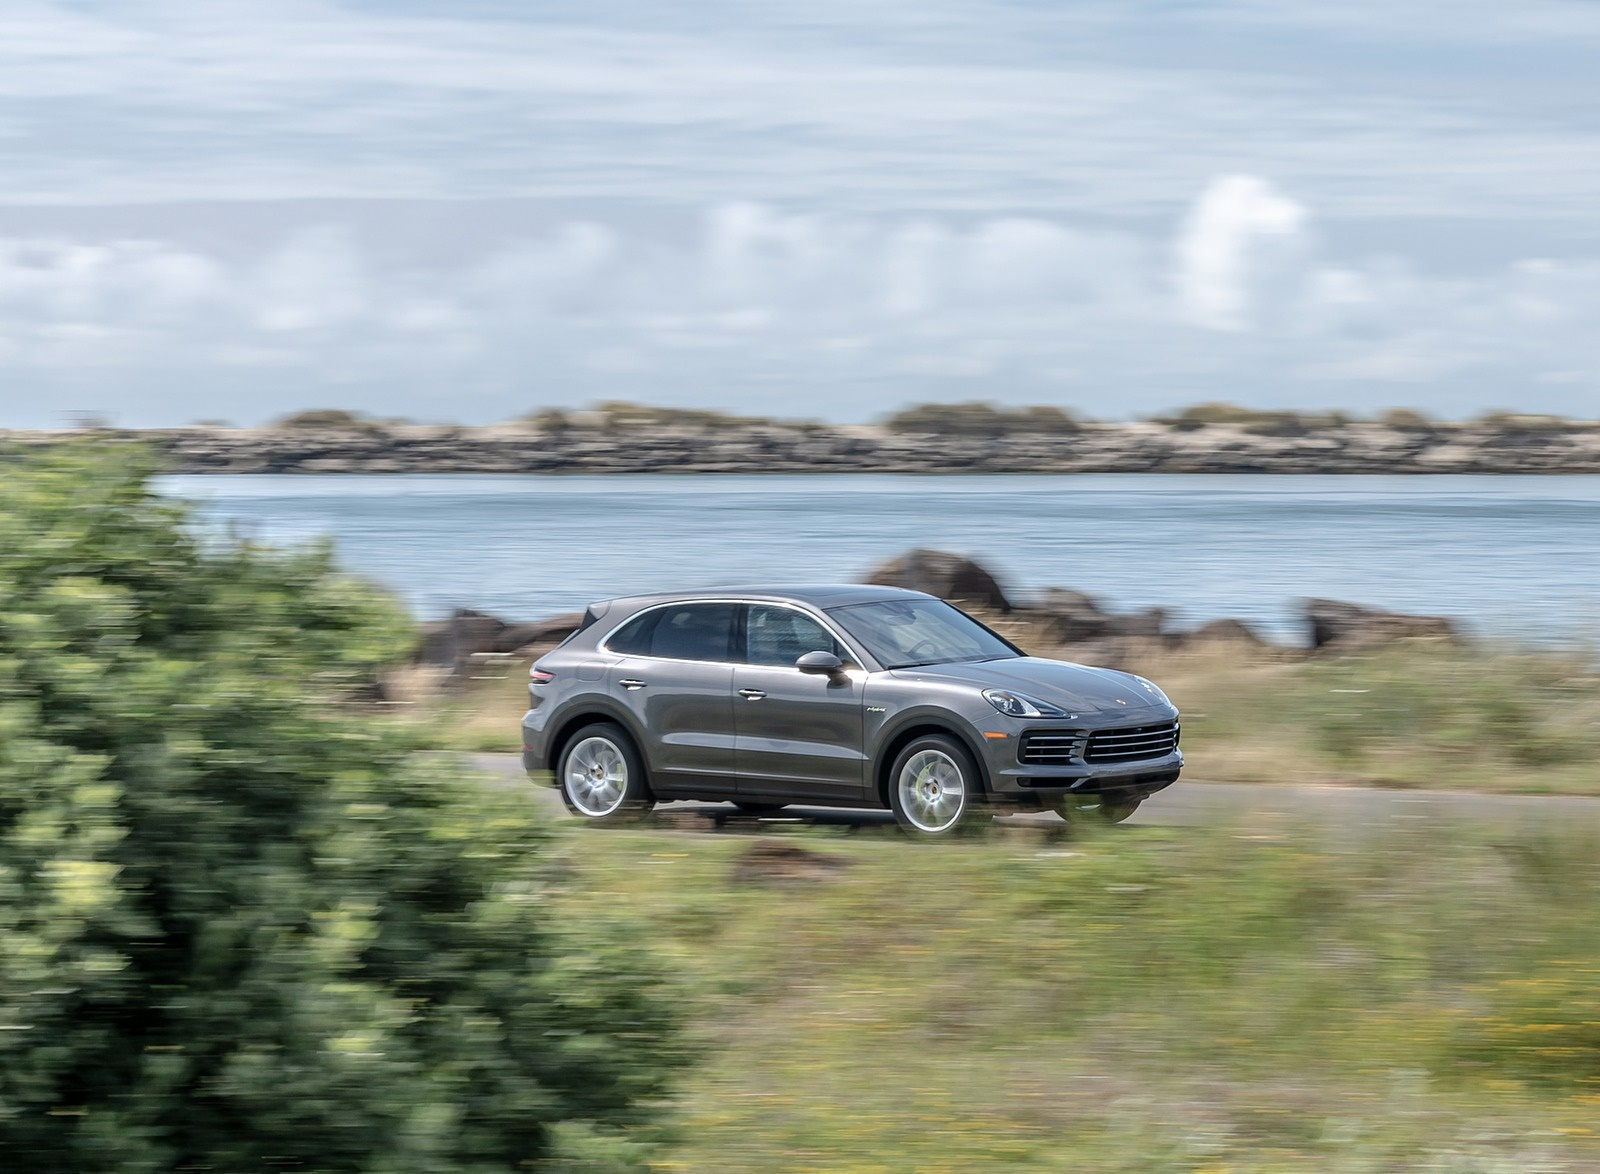 2019 Porsche Cayenne E-Hybrid (US-Spec) Front Three-Quarter Wallpapers #5 of 37